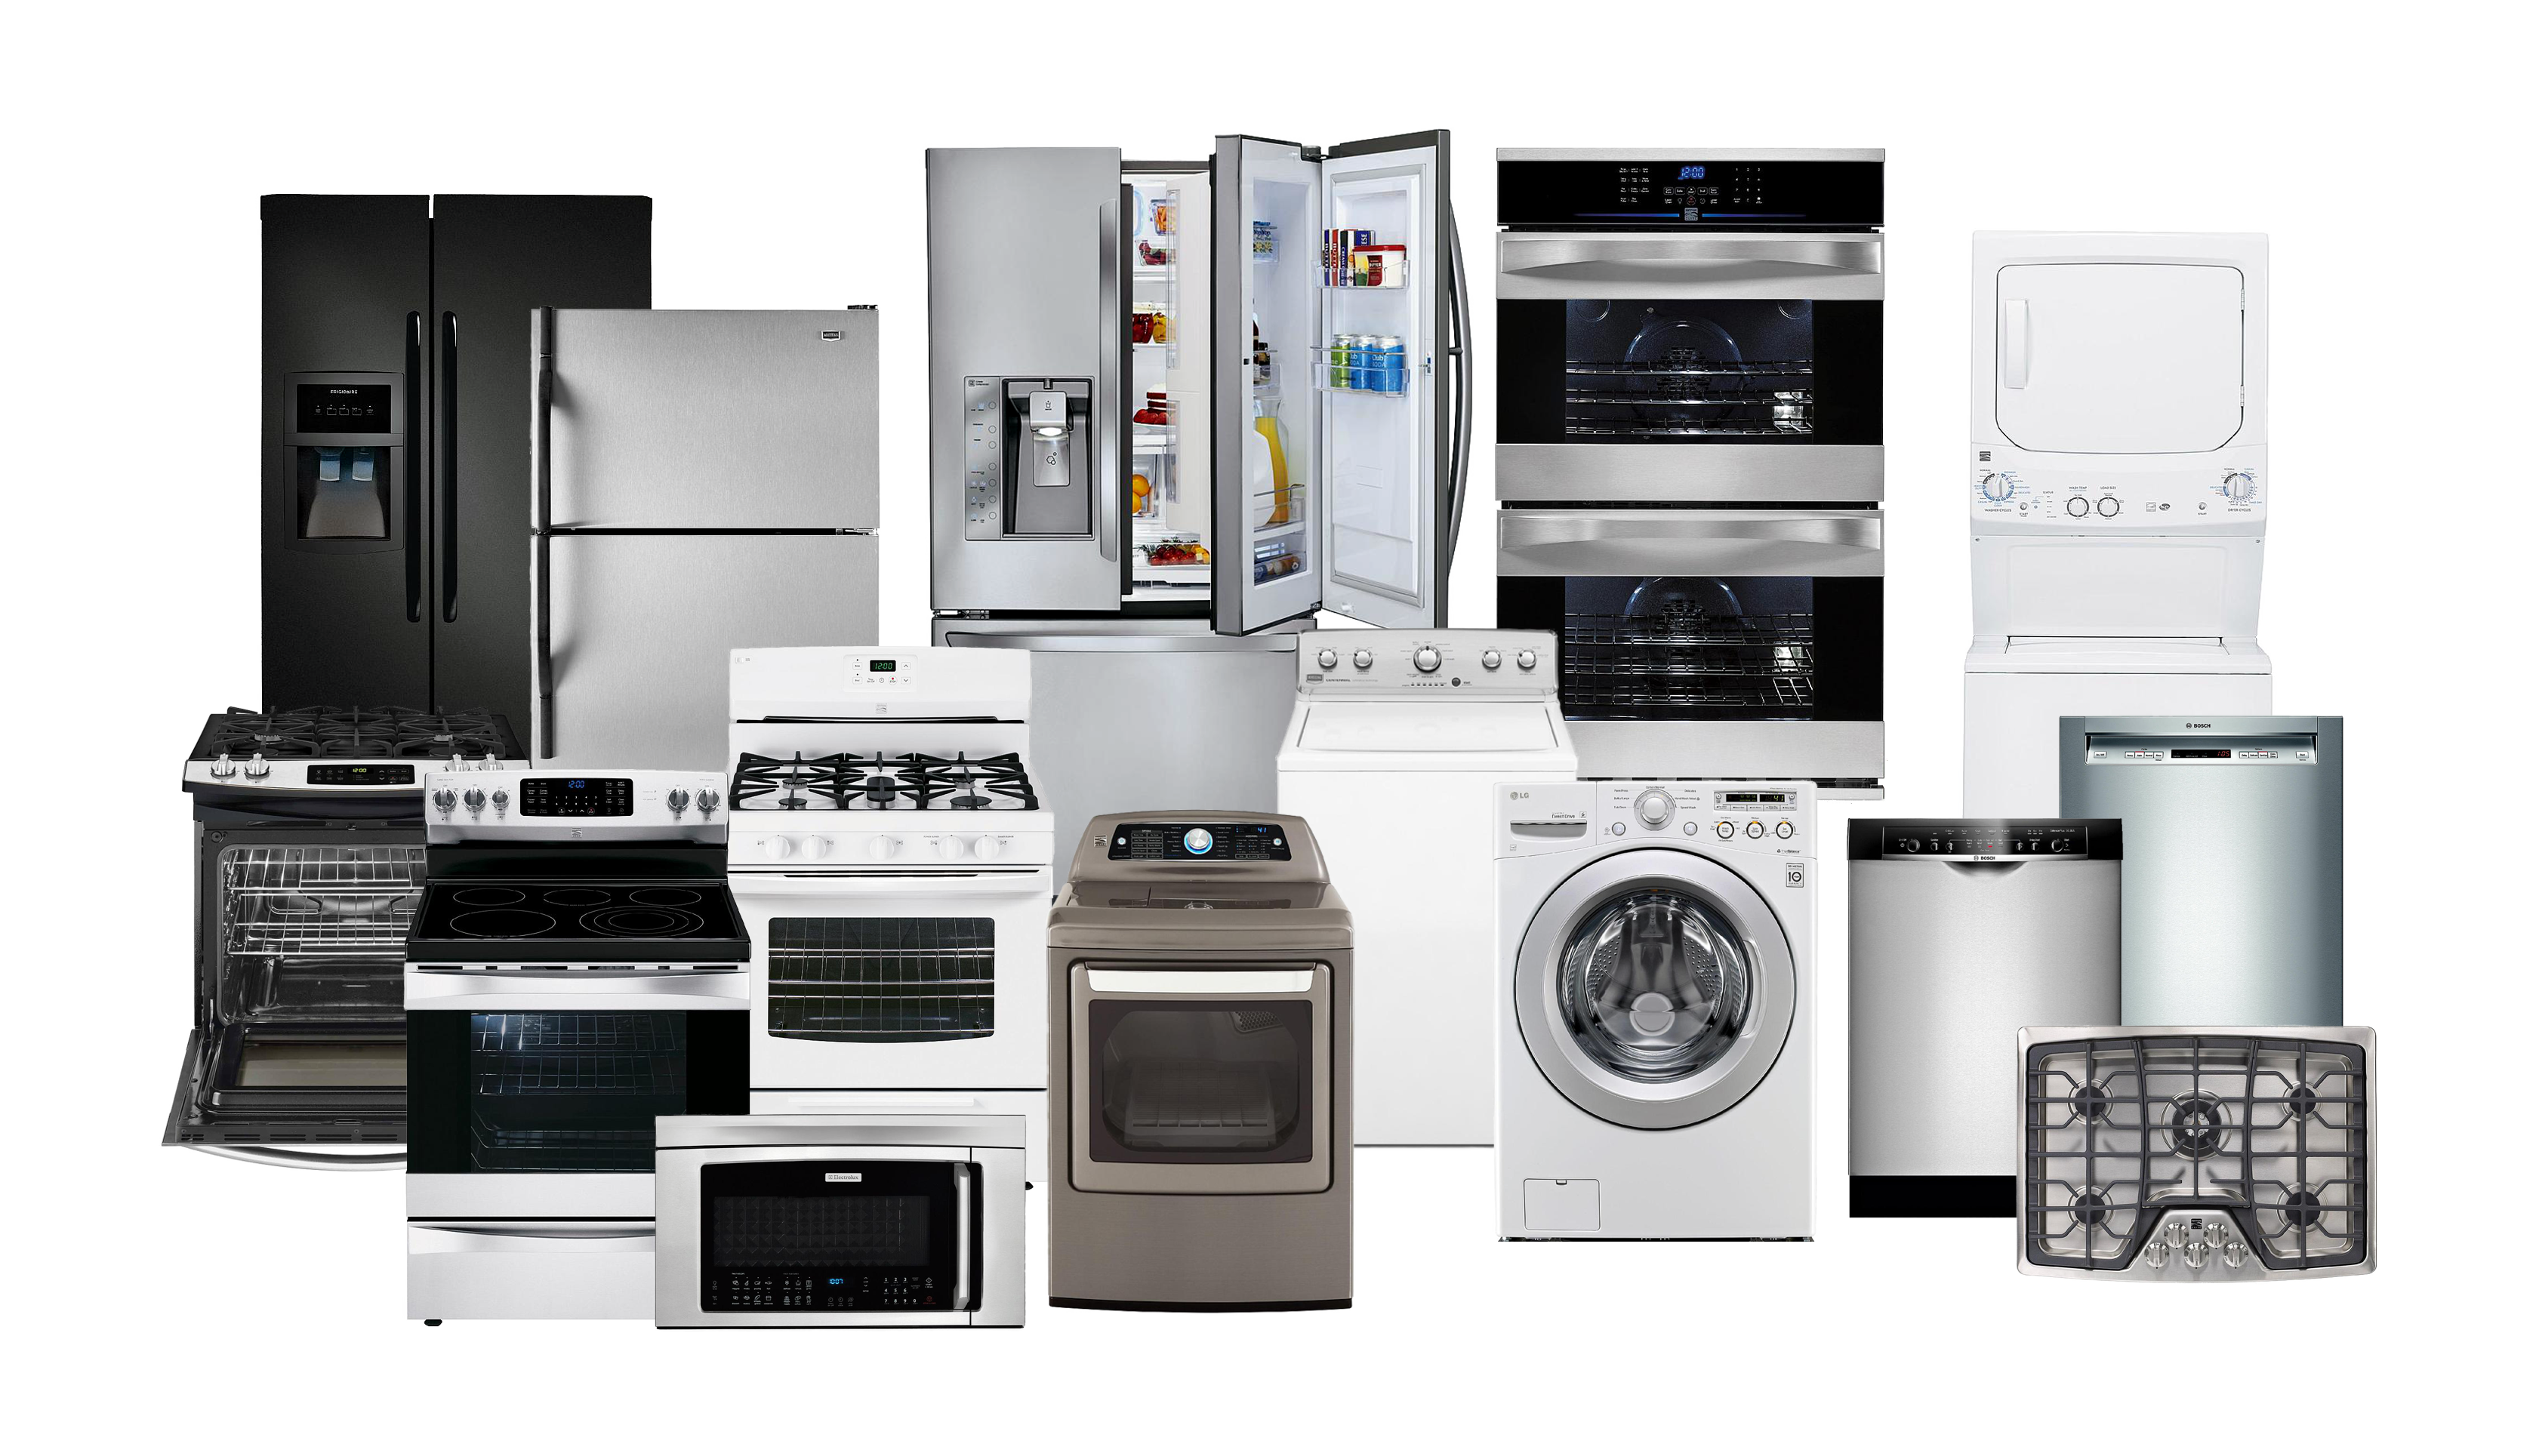 Where is my appliance model number located? - All Appliance Parts of  Sarasota and Bradenton, FL